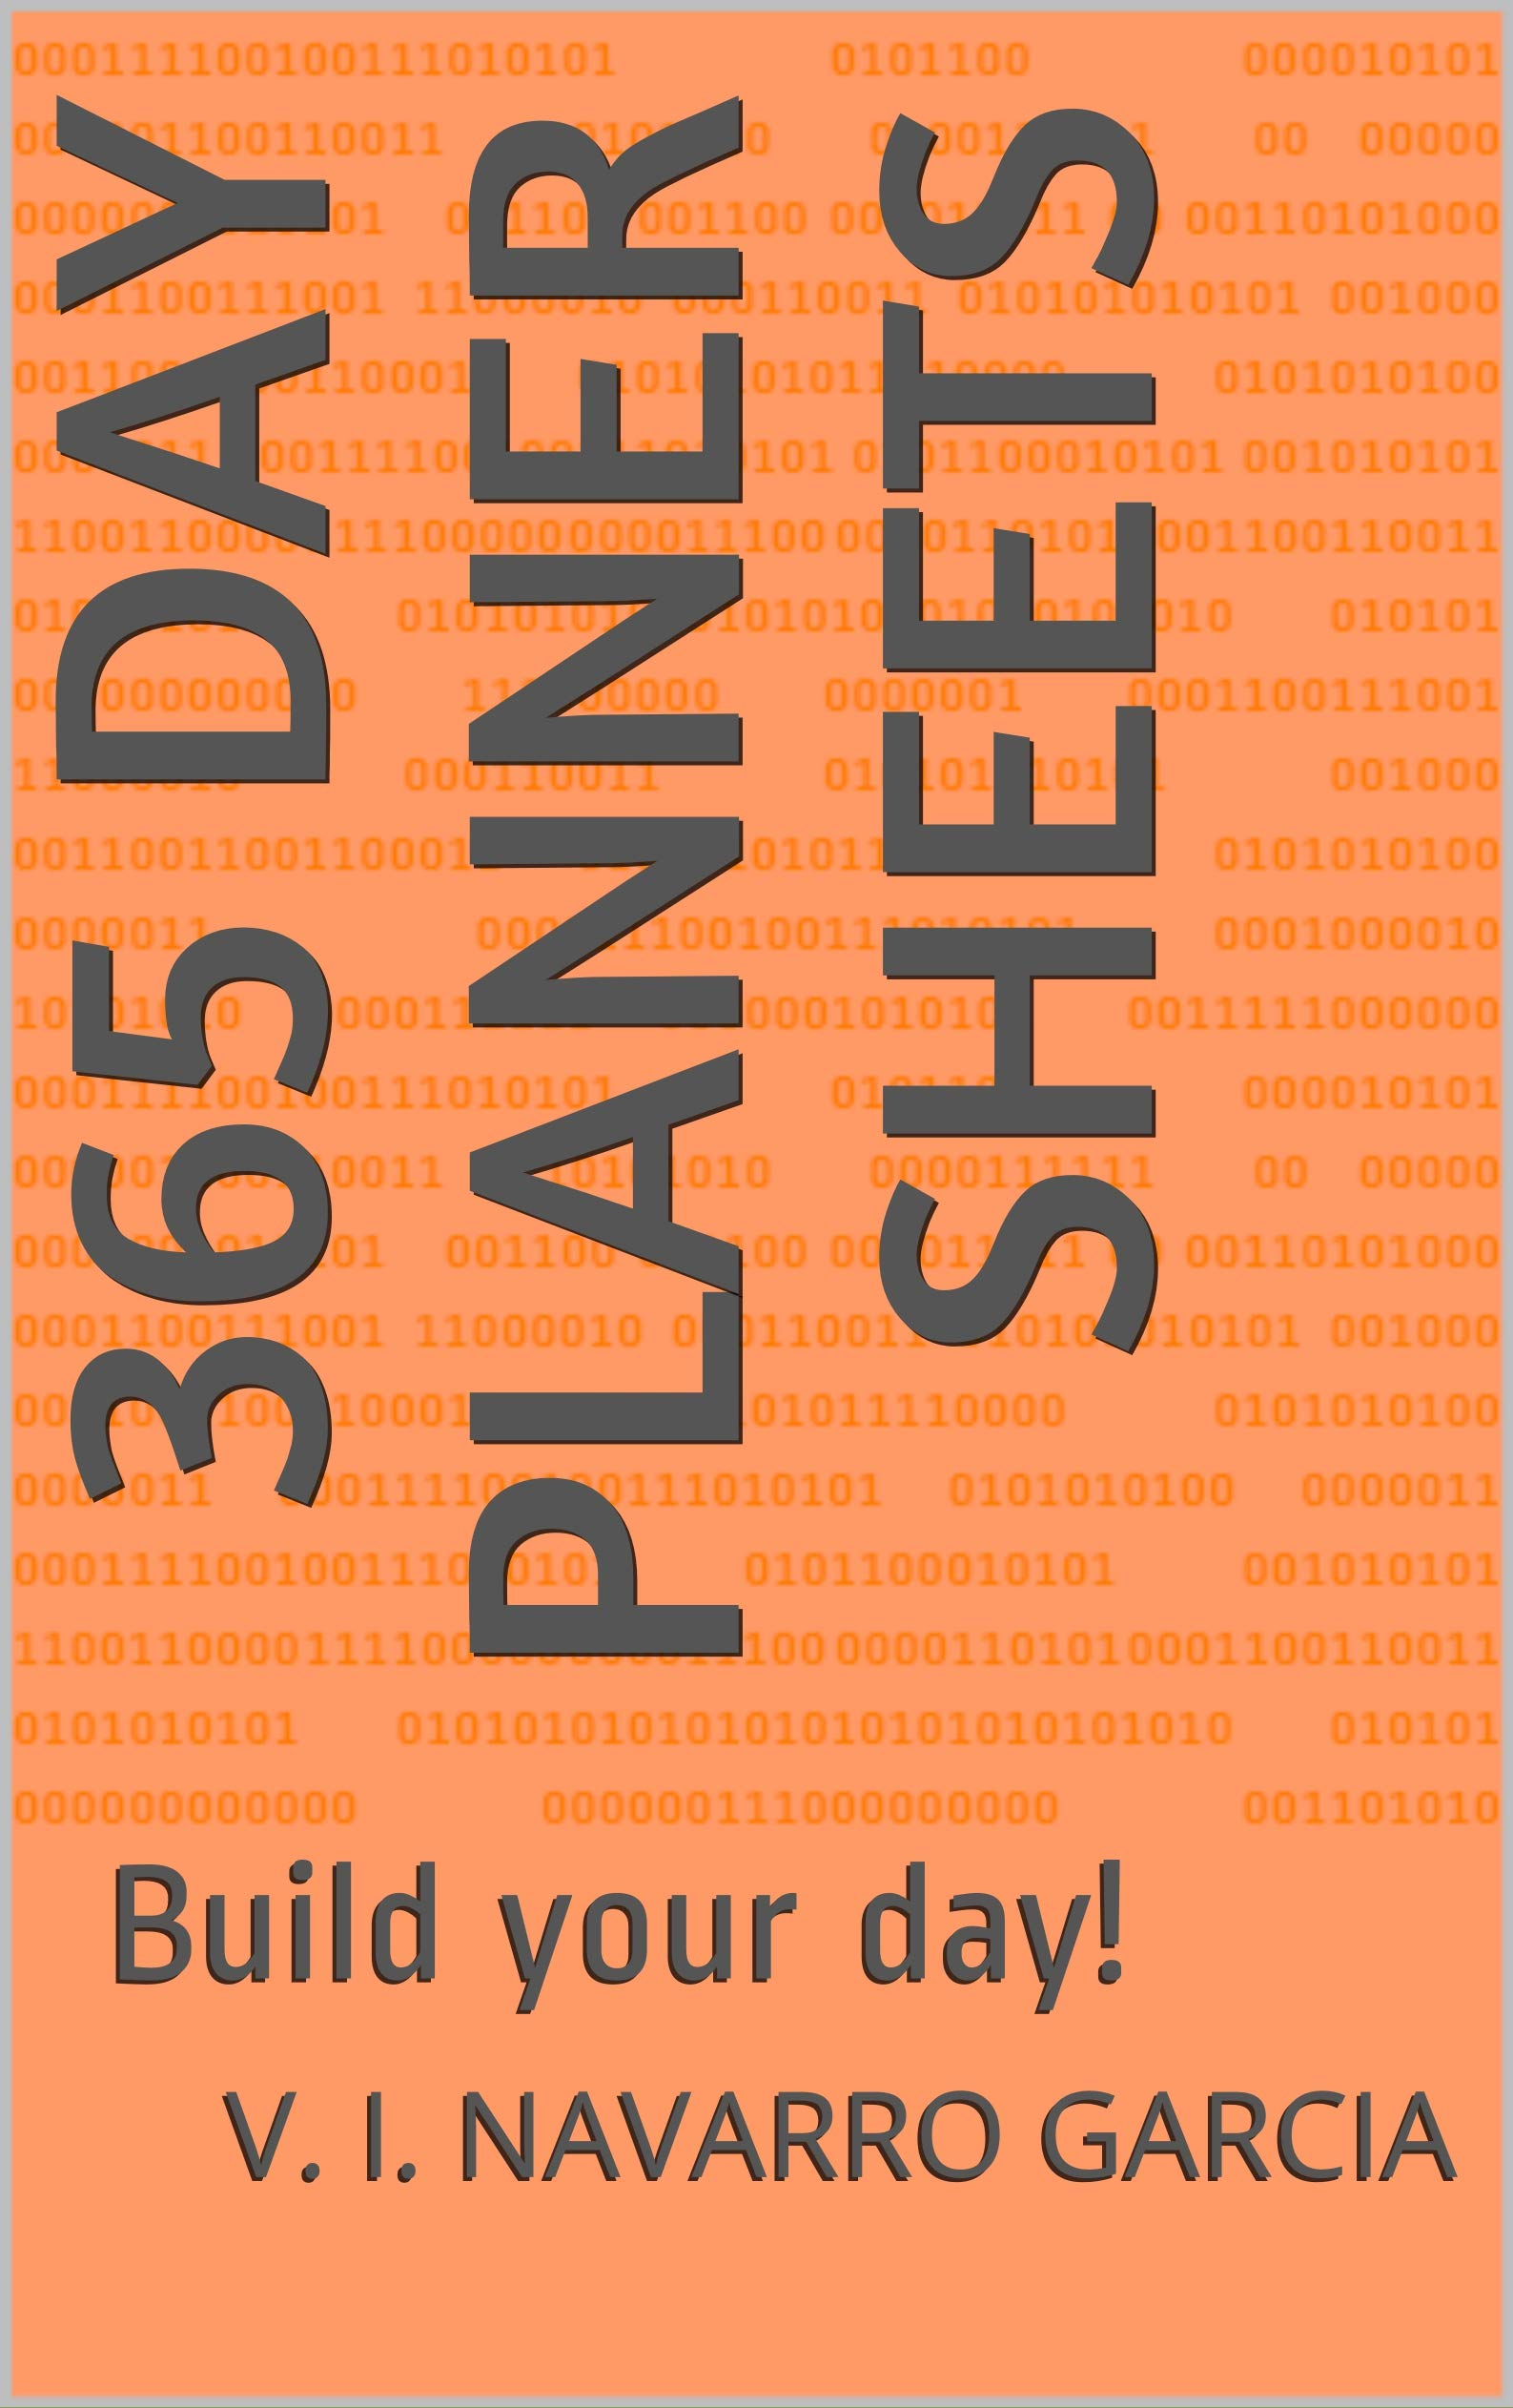 365 Day Planner Sheets: Build your day!